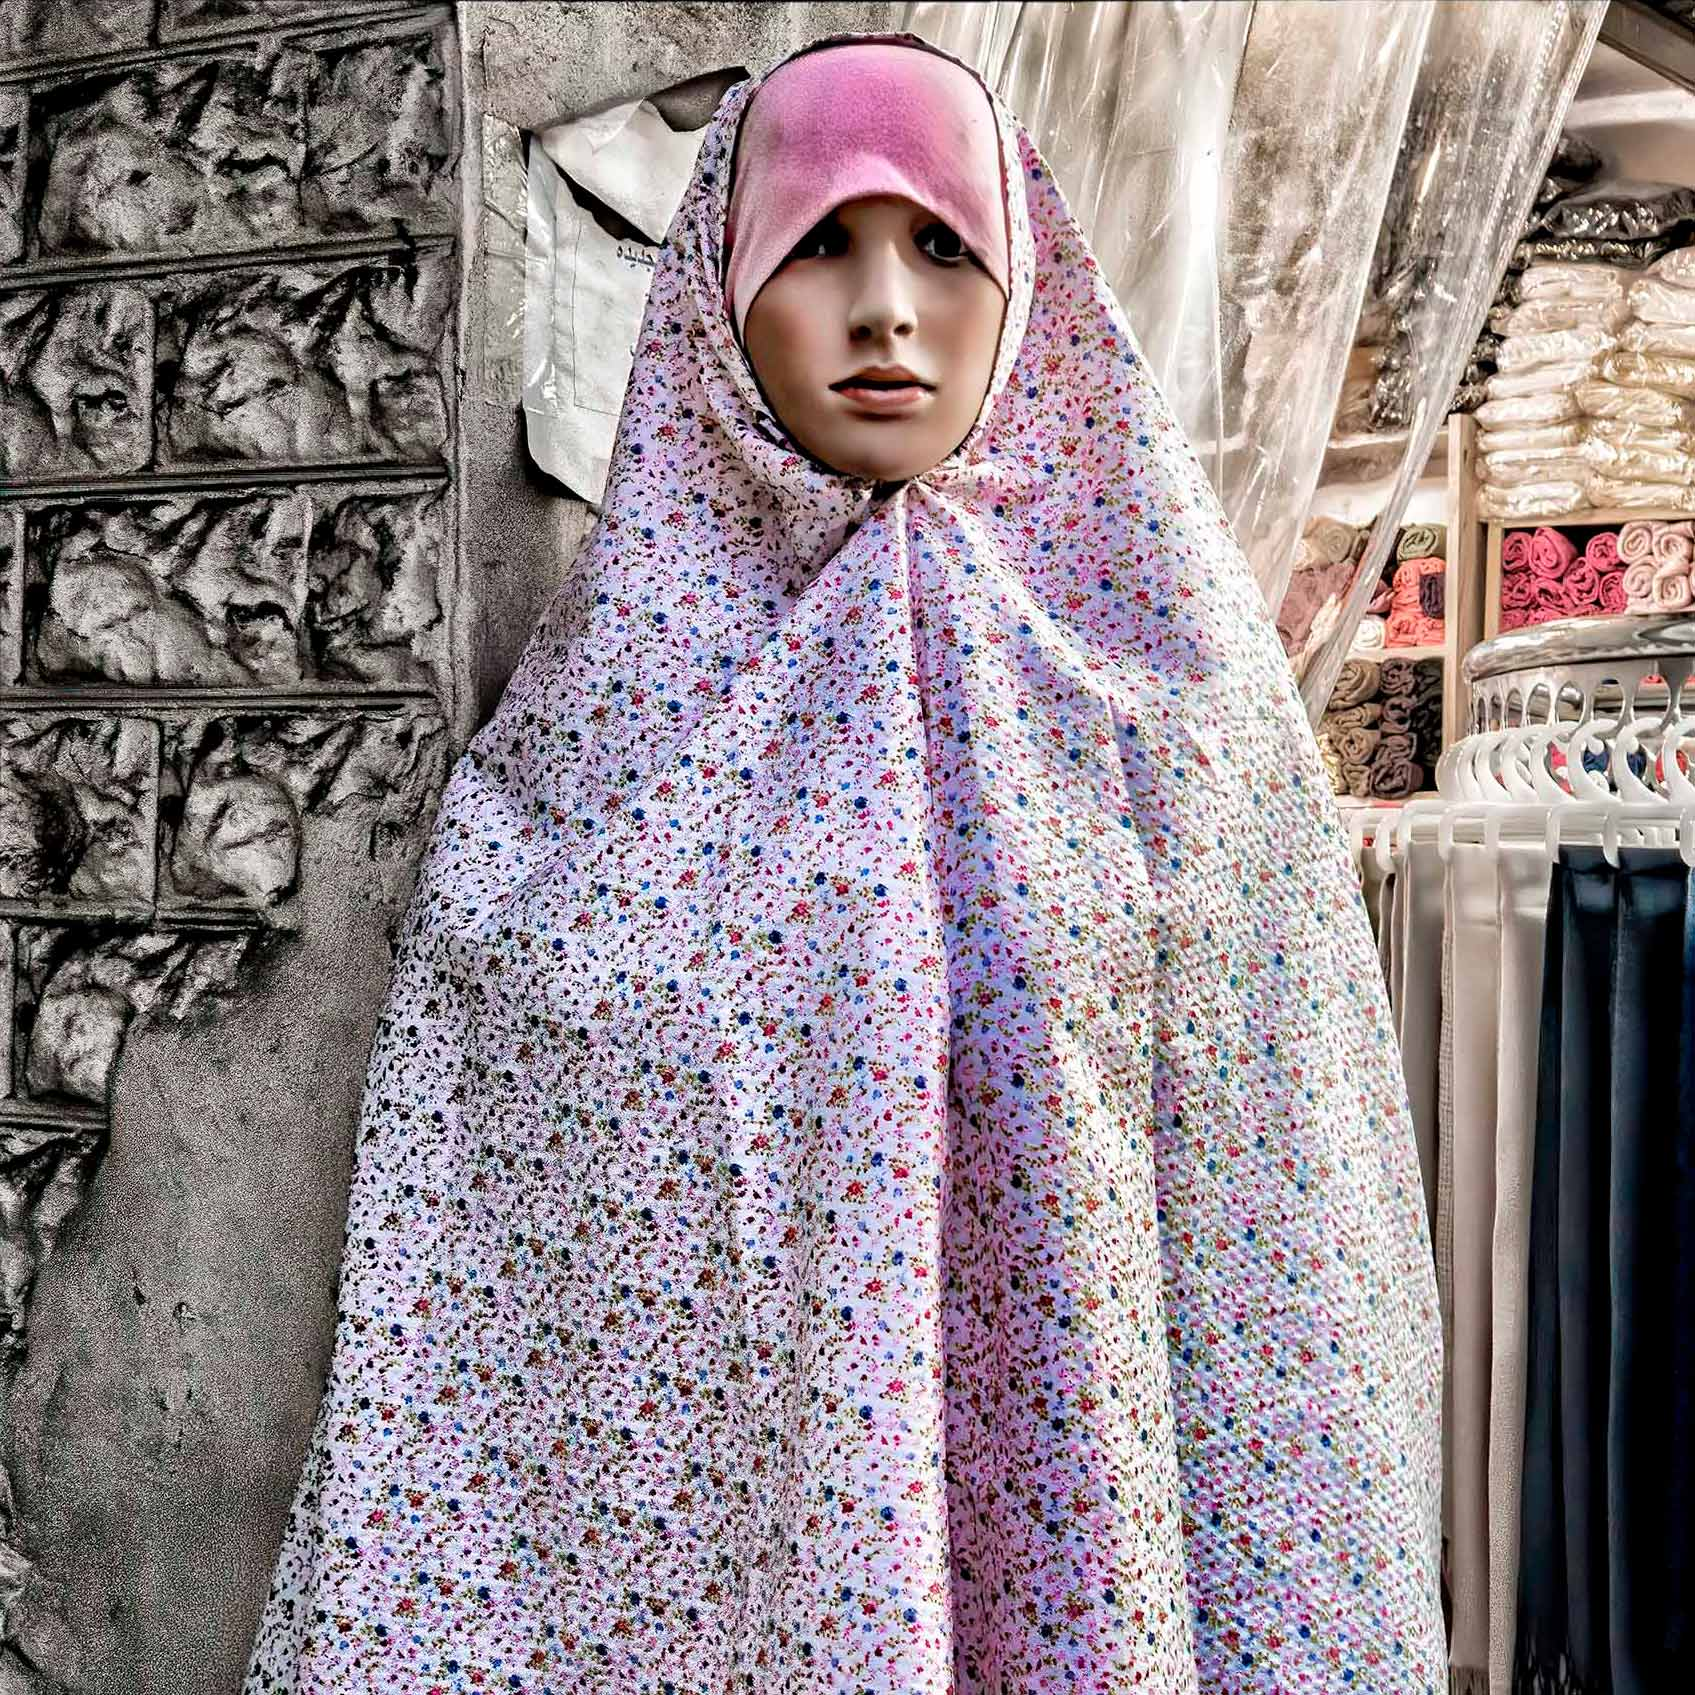 a-mannequin-wearing-a-hijab-stands-in-a-market-stall-in-beirut-lebanon